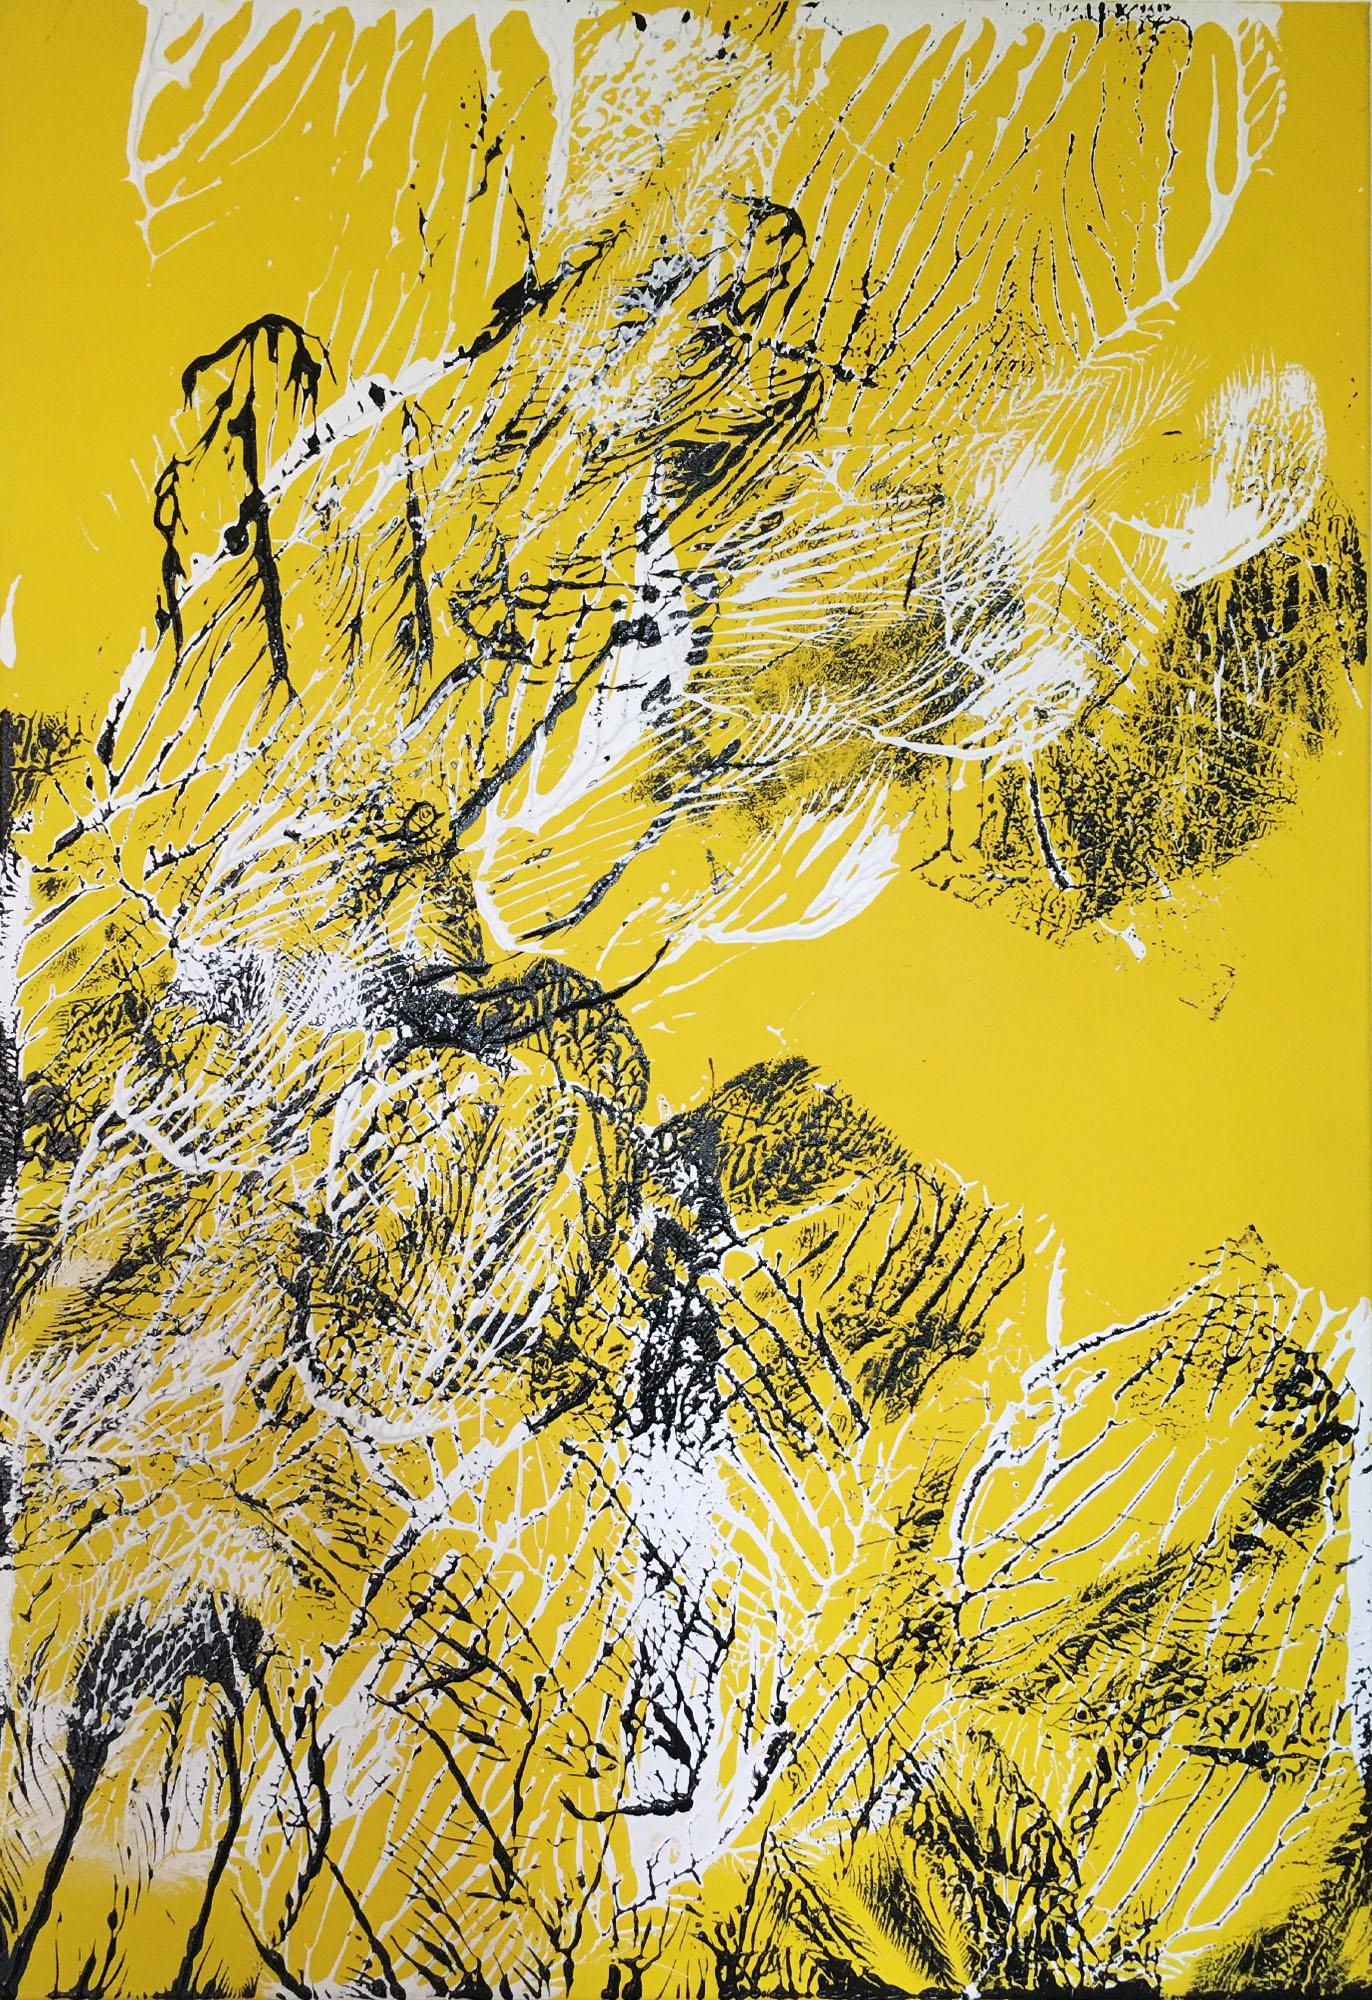 """Abstracts: """"Imprints,"""" In the sun"""""""", acrylics on canvas,100x70 cm,2021"""